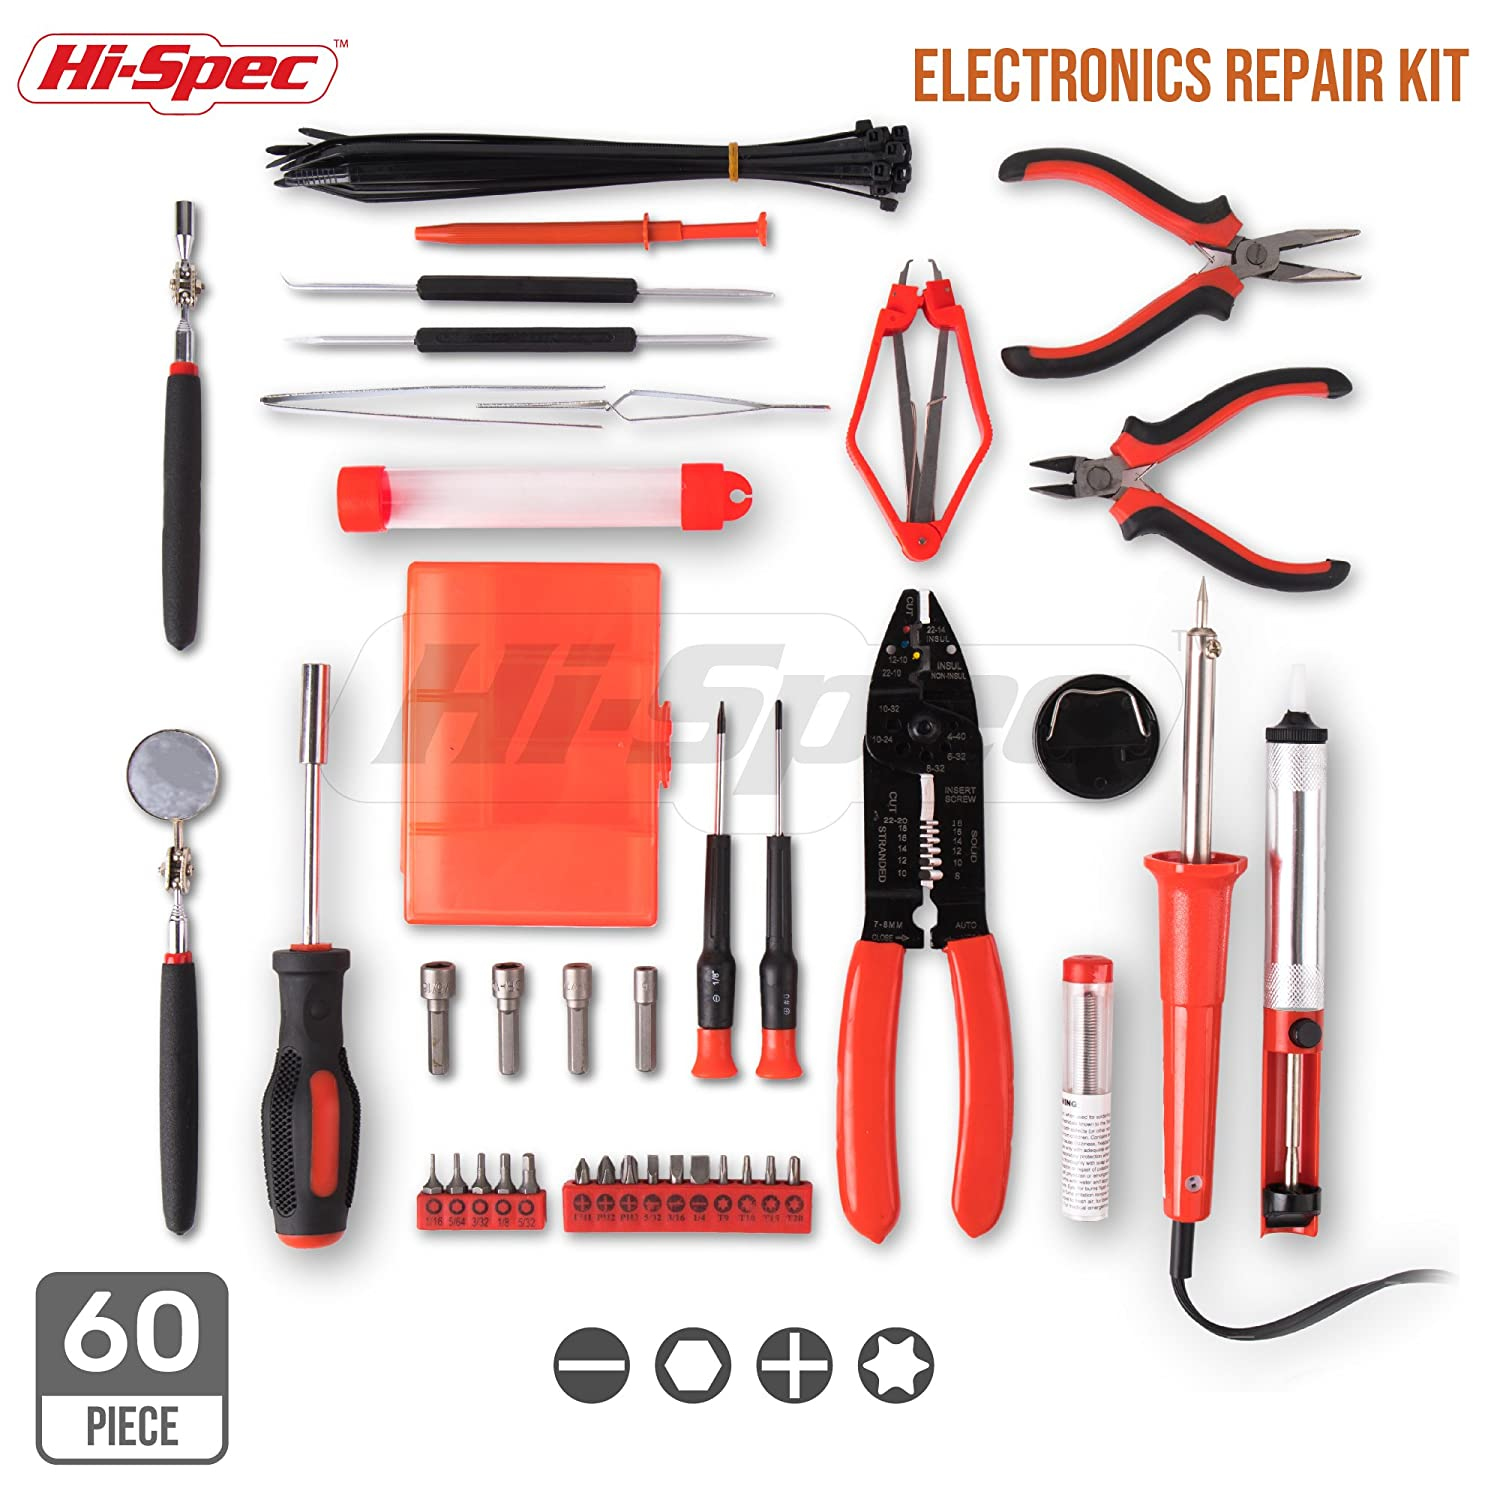 Hi Spec 60 Piece Electronics Electrical Engineer Tool Electronic Watchdog Kit Electronix With 30w Soldering Iron Desoldering Pump Wire Crimper Stripper Cutter